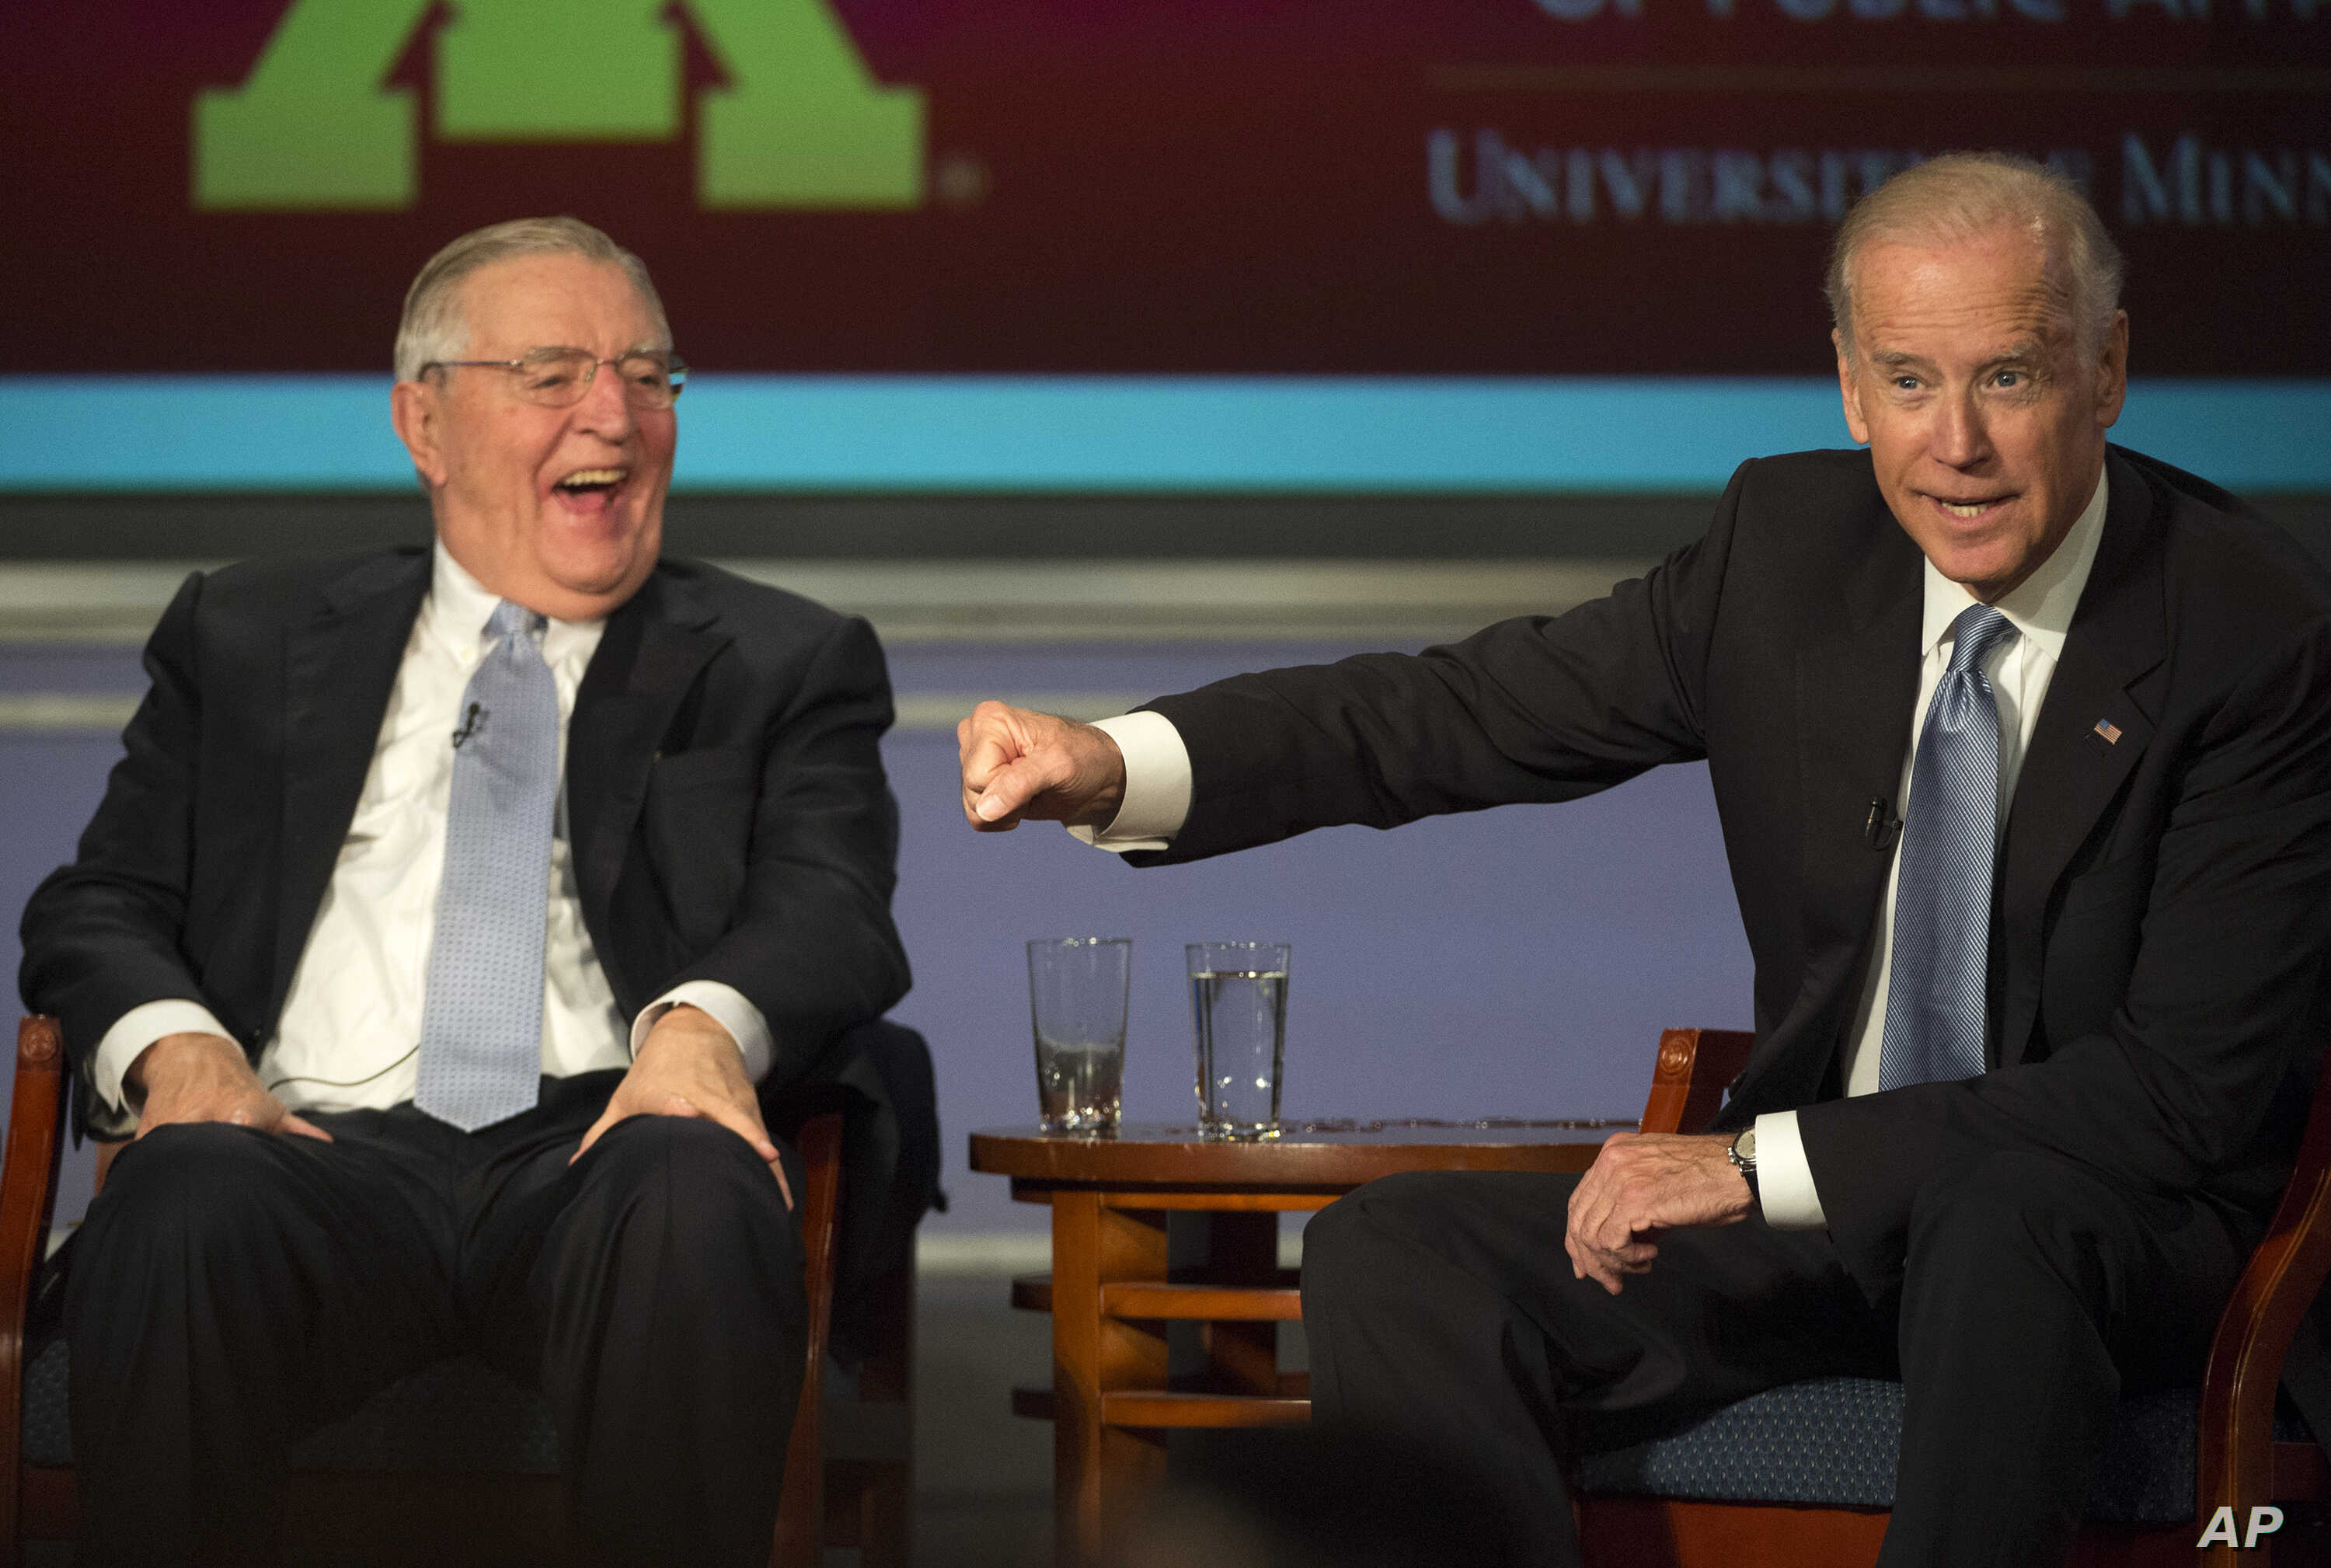 Vice President Joe Biden gestures toward former Vice President Walter Mondale as they participate in a forum honoring Mondale's legacy, at George Washington University in Washington, Oct. 20, 2015.